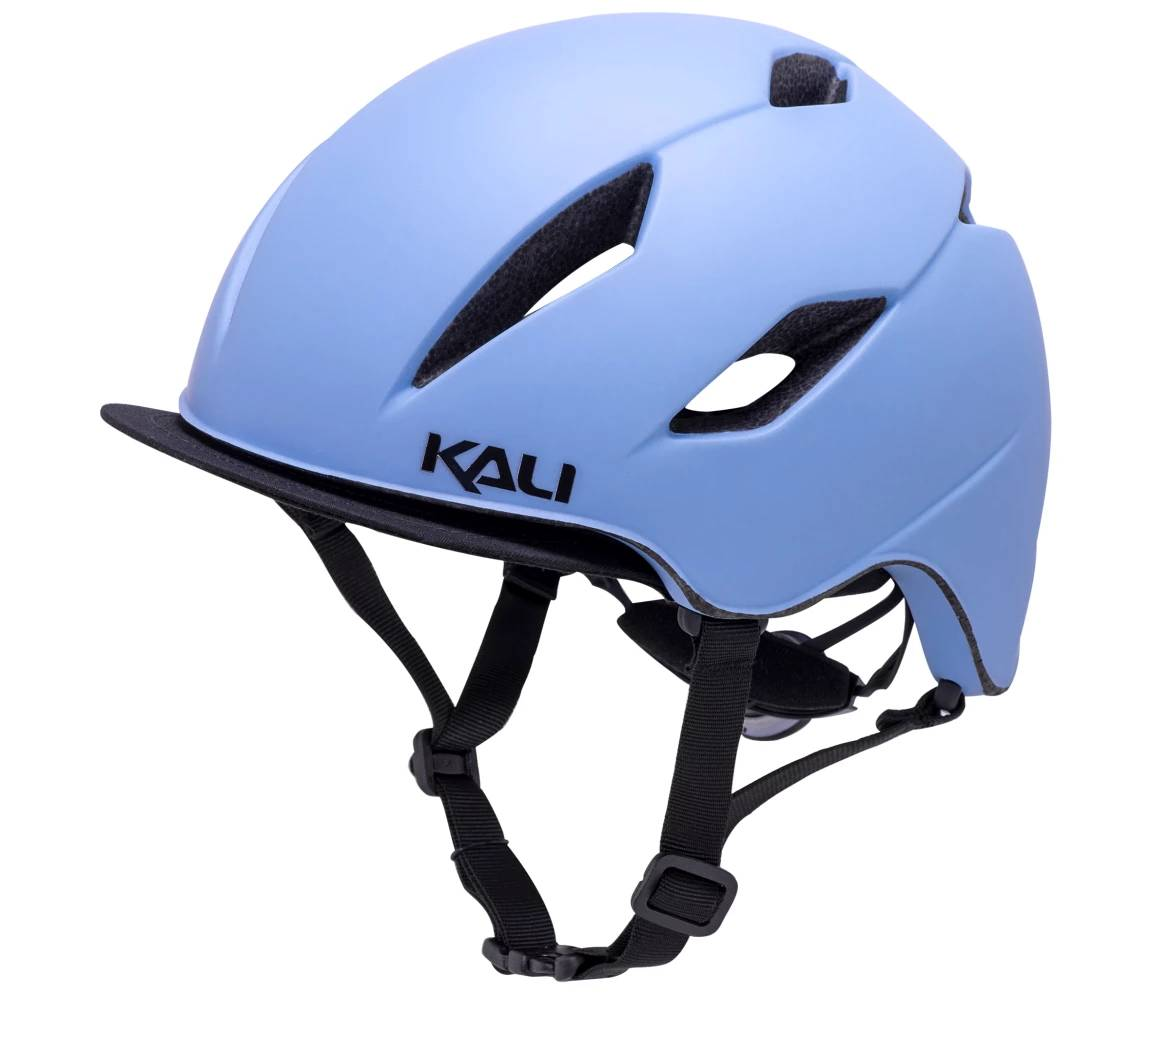 Danu Mate Ice by Kali Protectives